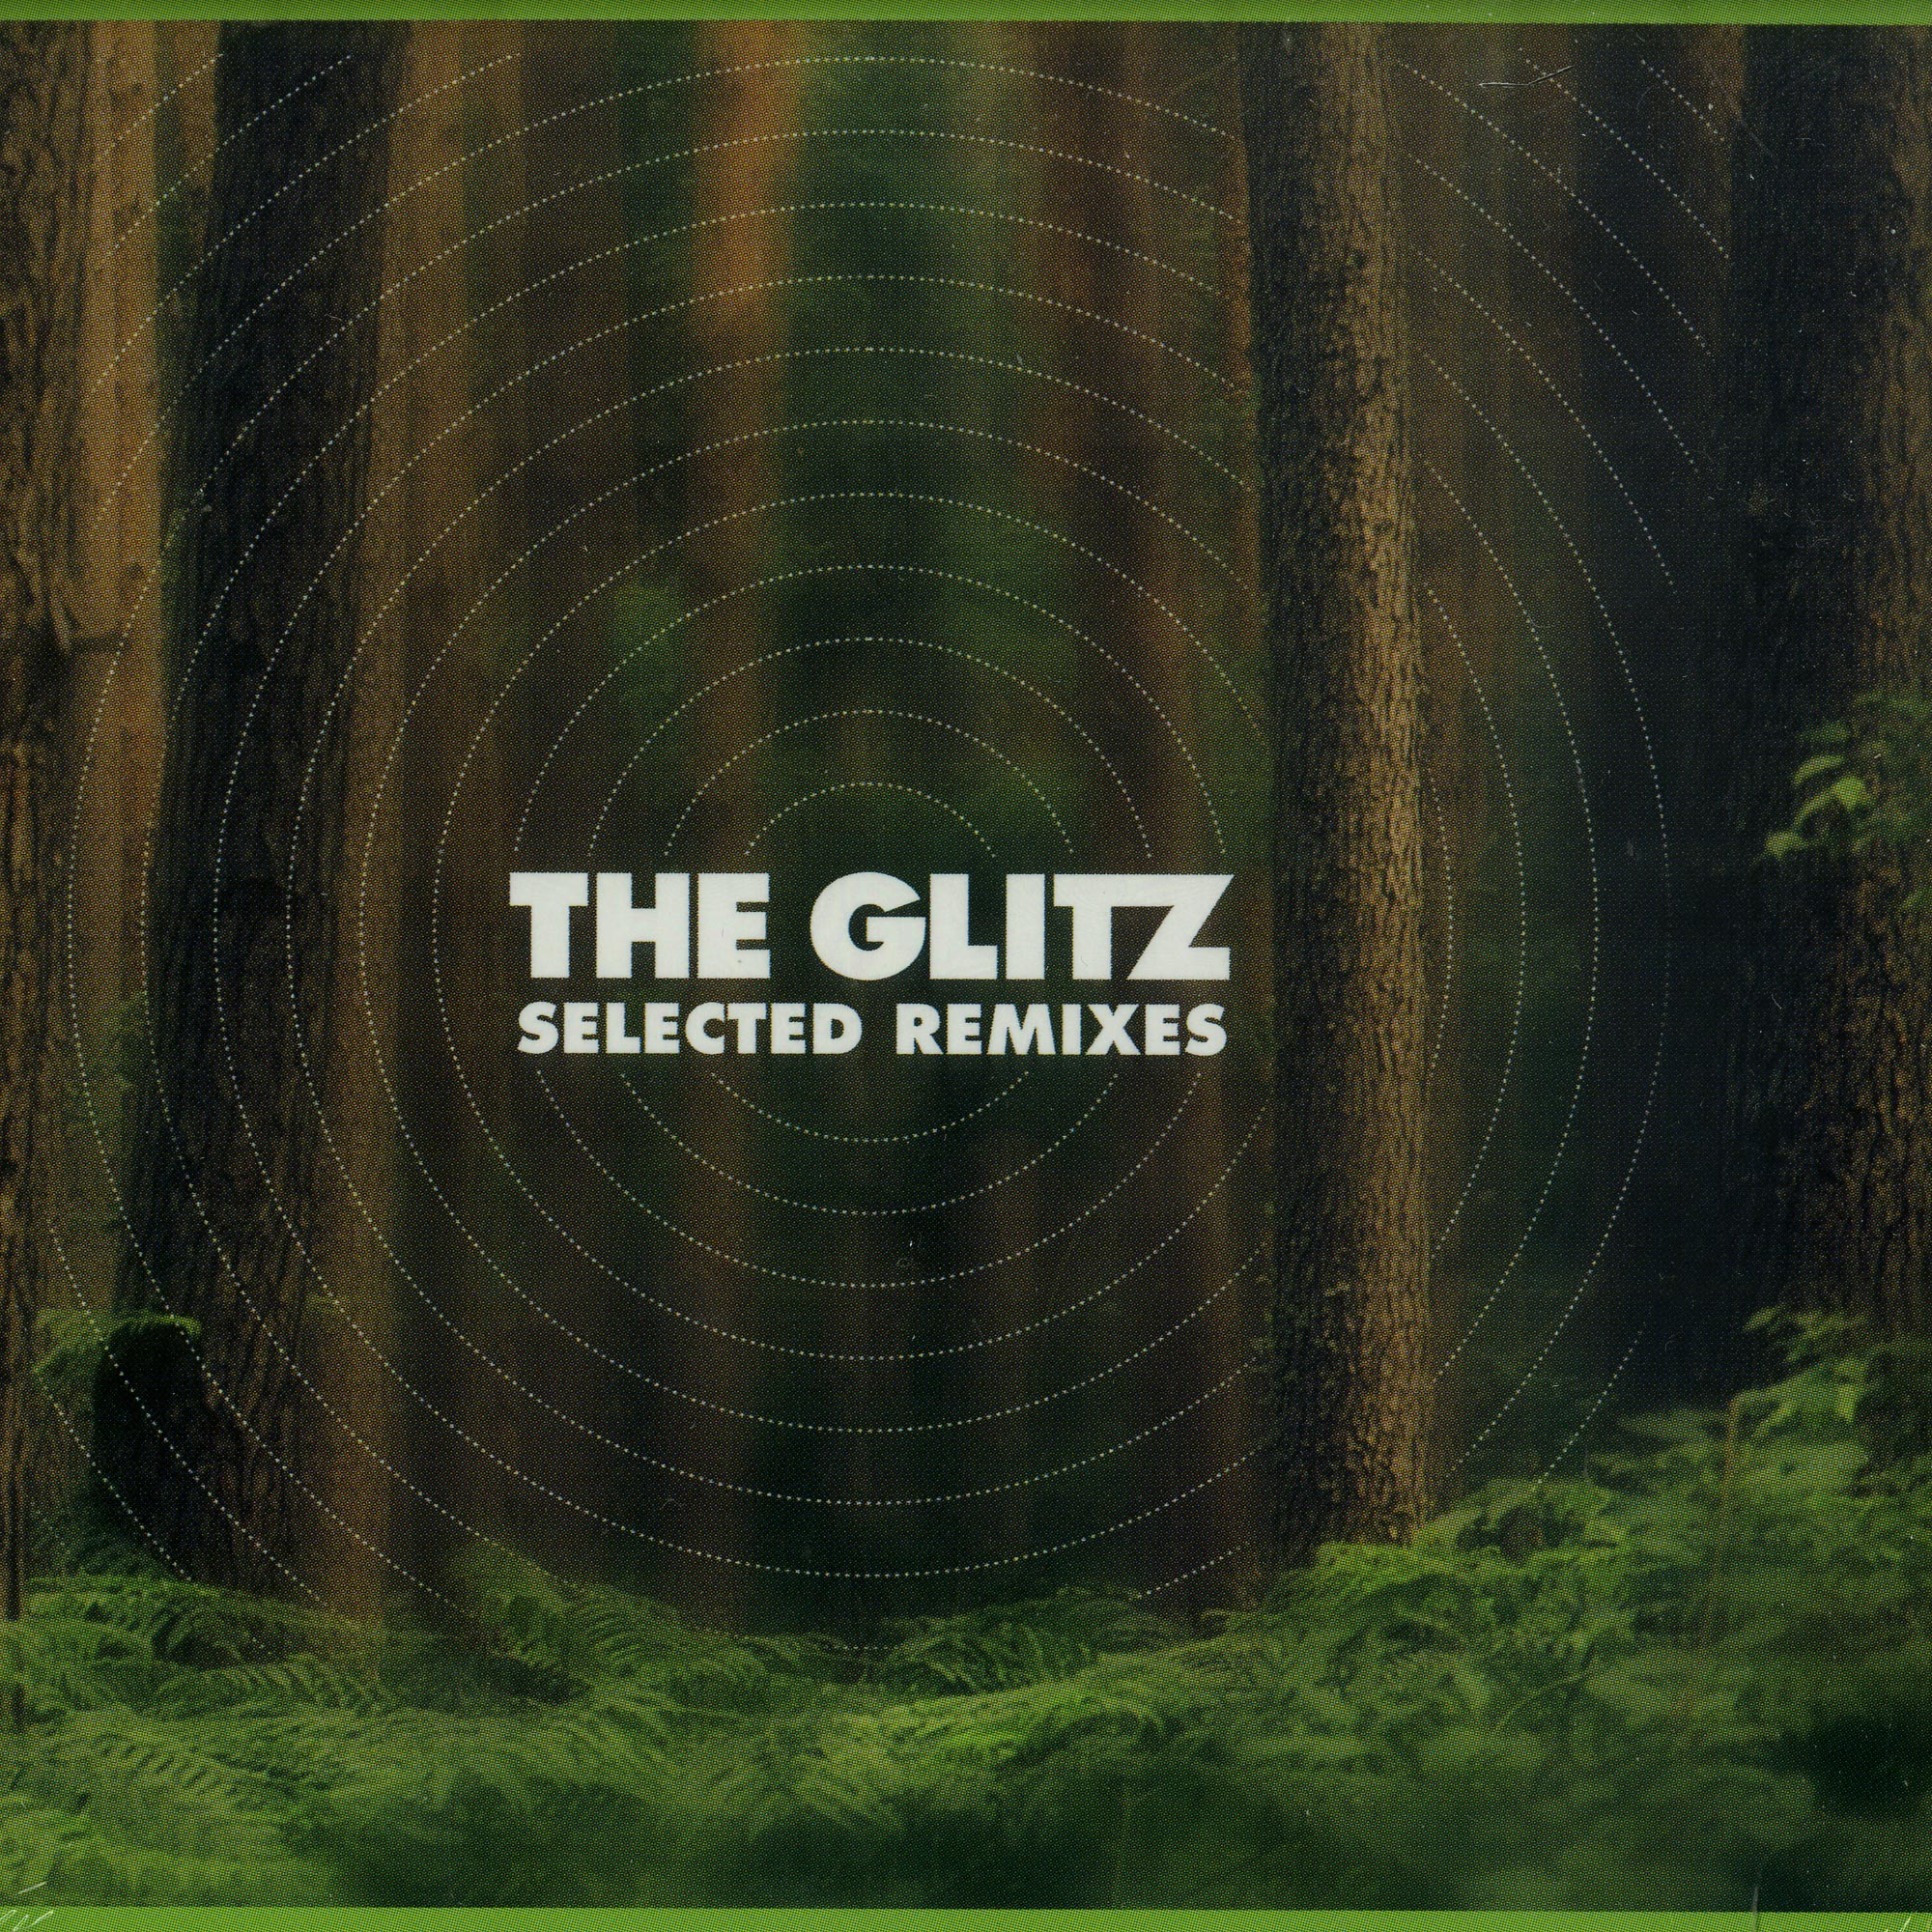 The Glitz - SELECTED REMIXES